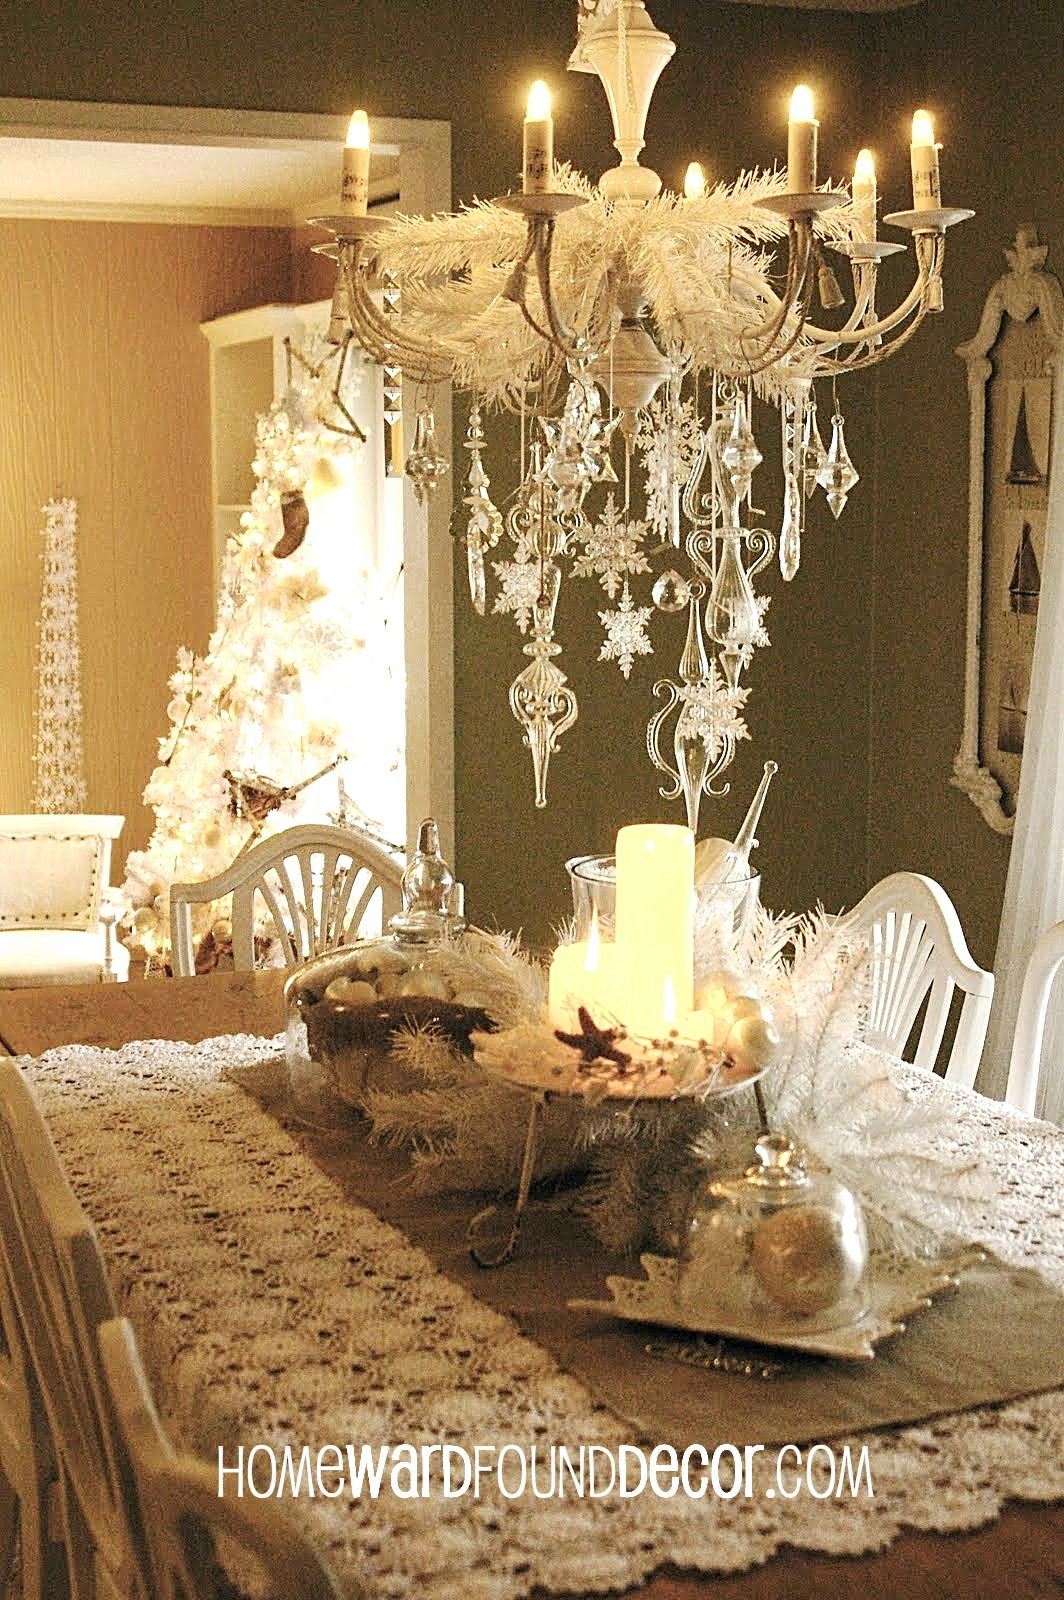 a Vintage White ChristmashomewardFOUNDdecor